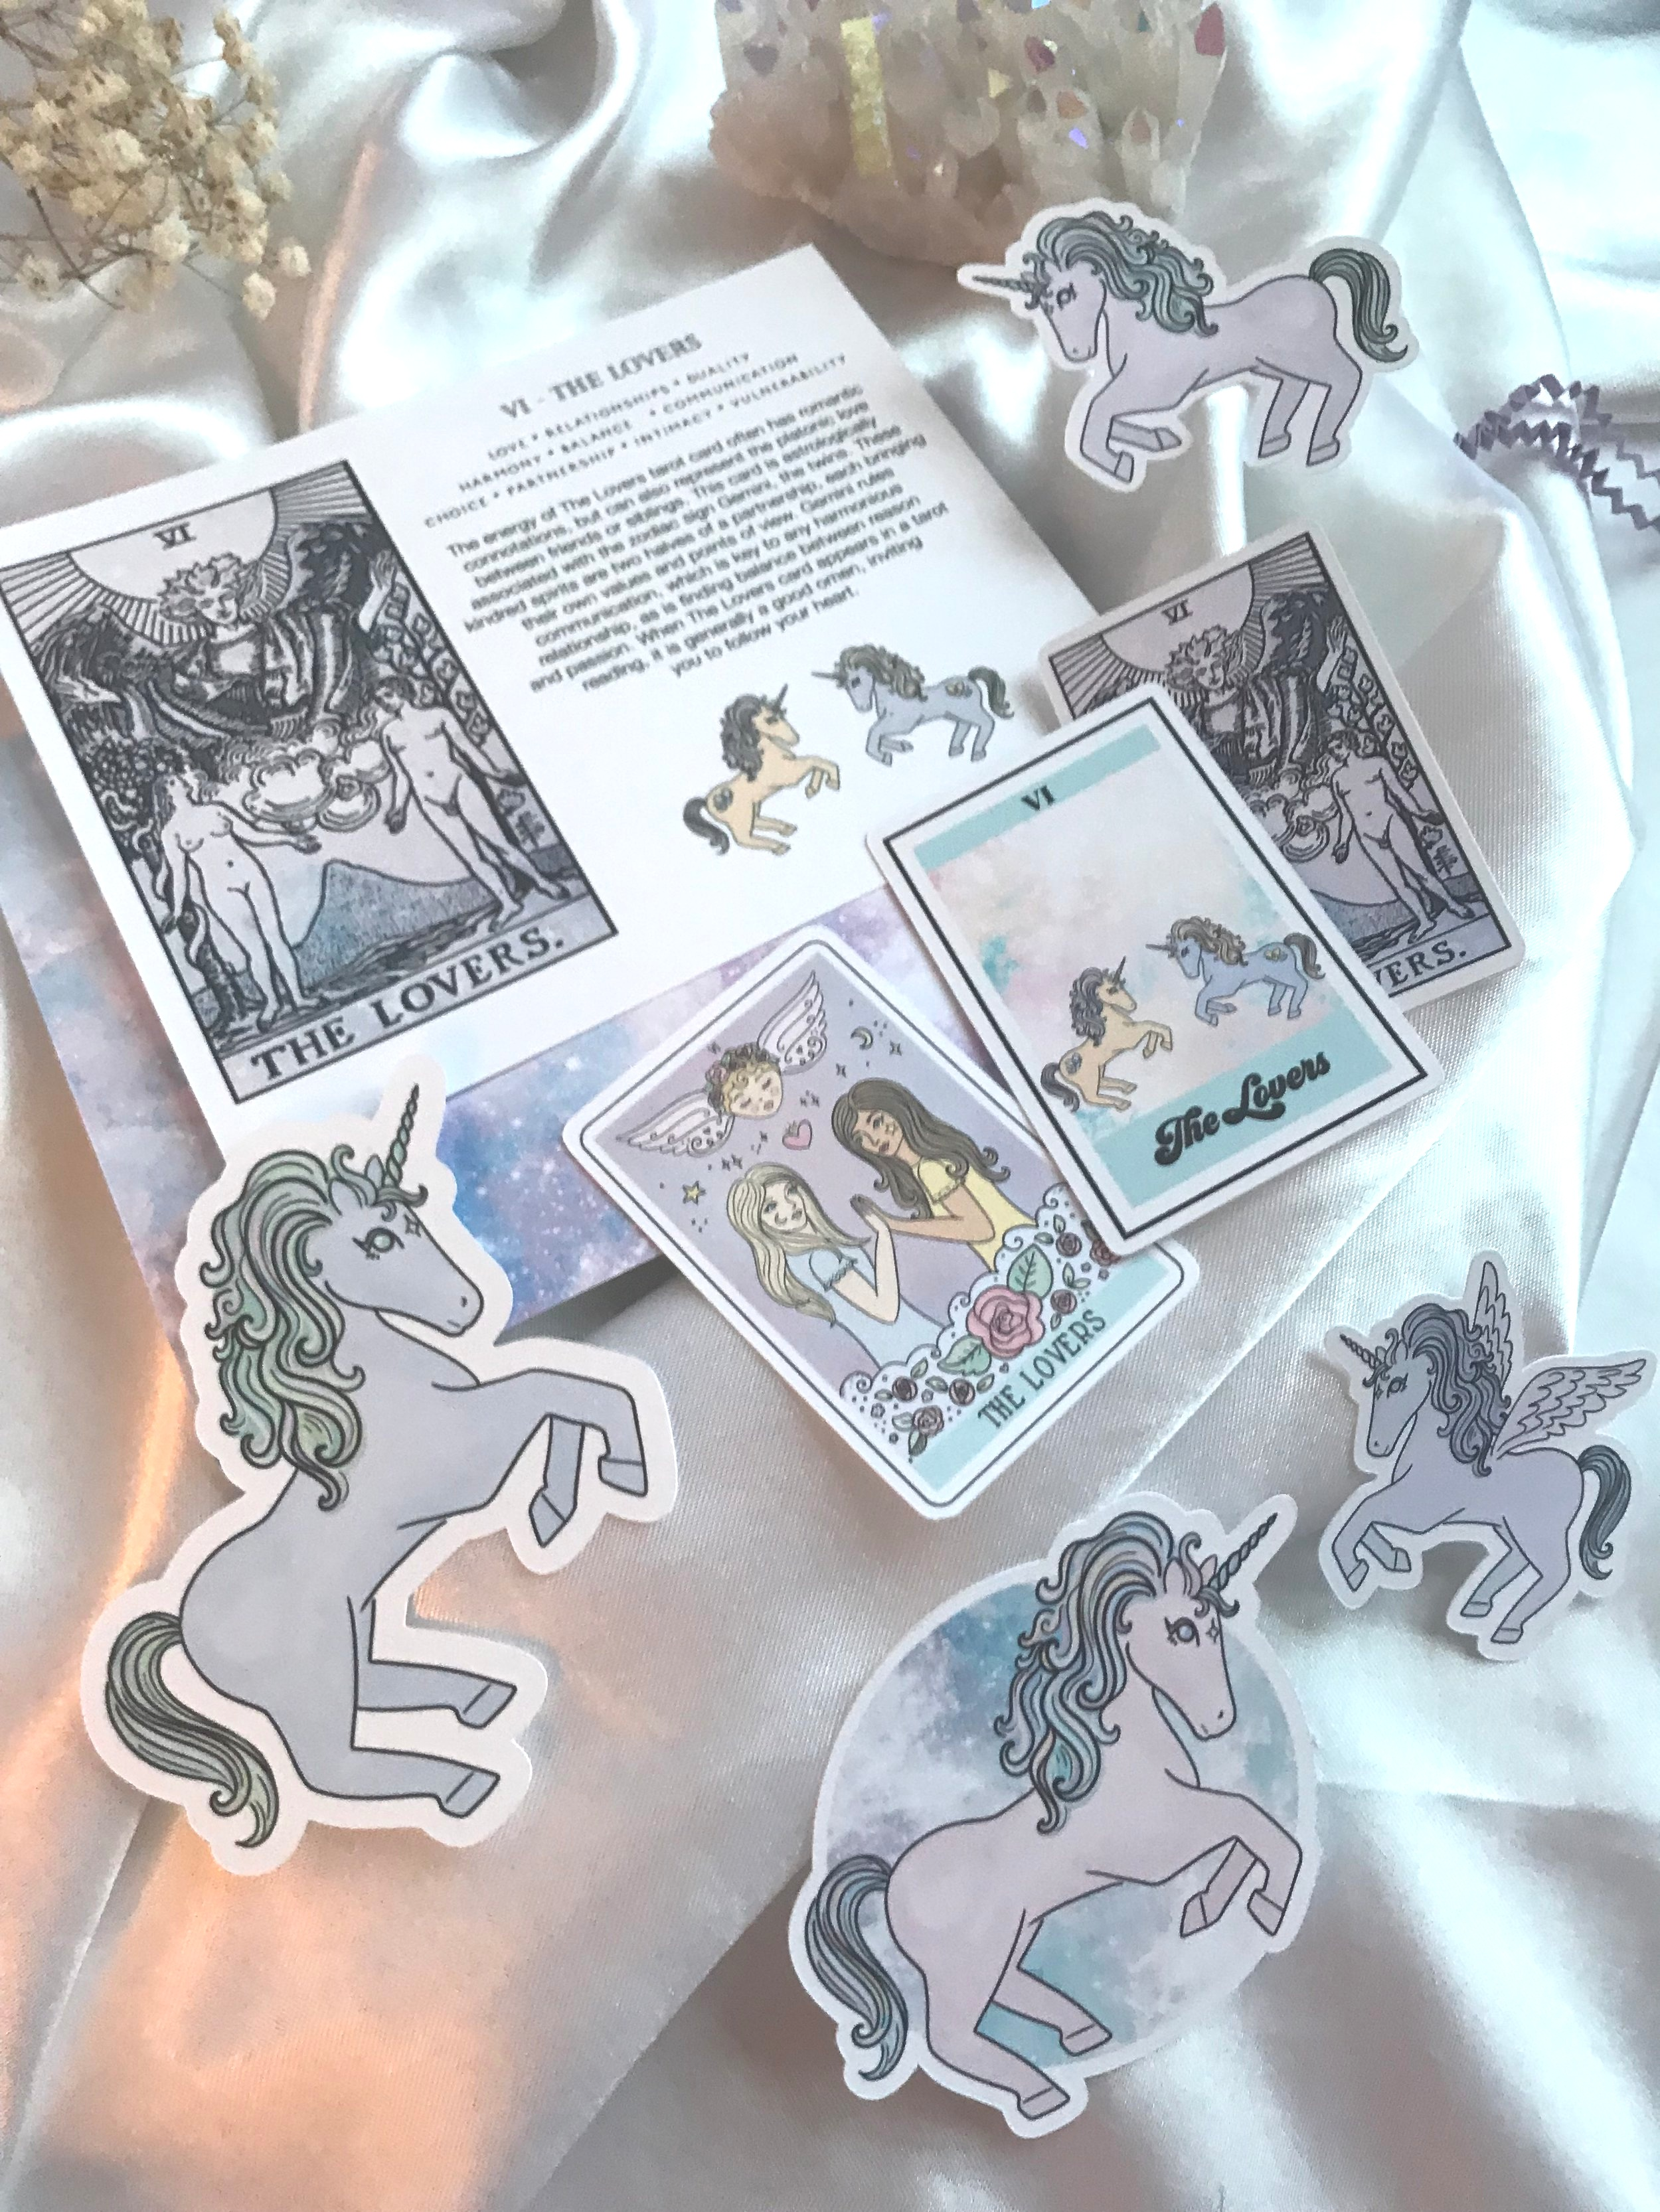 subscriber exclusive: paper ephemera pack, featuring variations on The Lovers tarot card